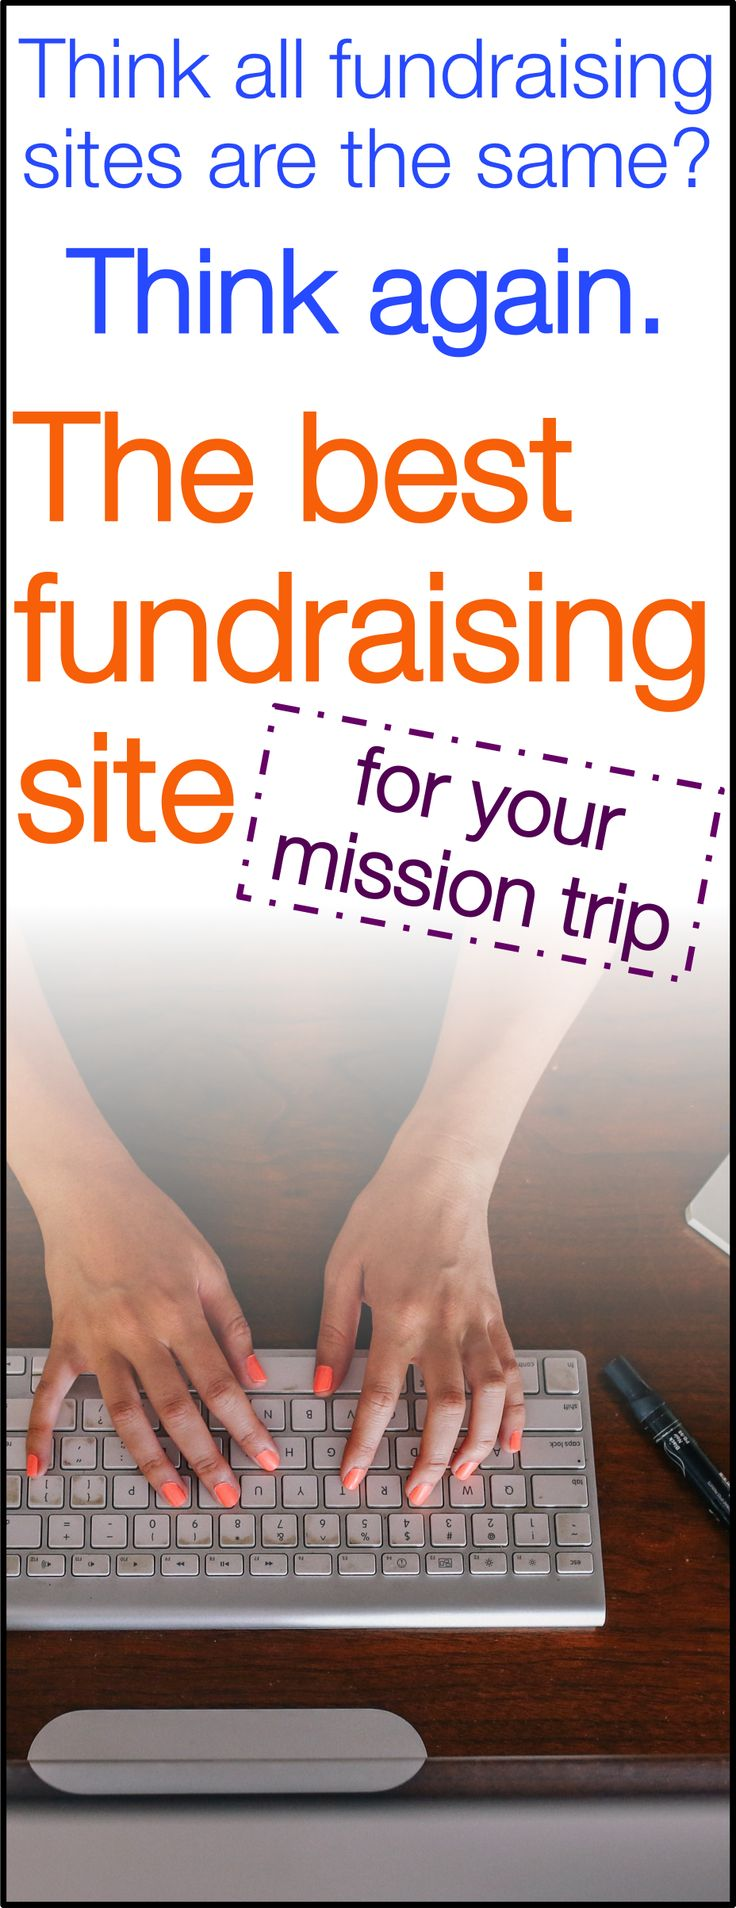 Do you know which online fundraising site is best for mission trip donations? This small decision can make a big difference.